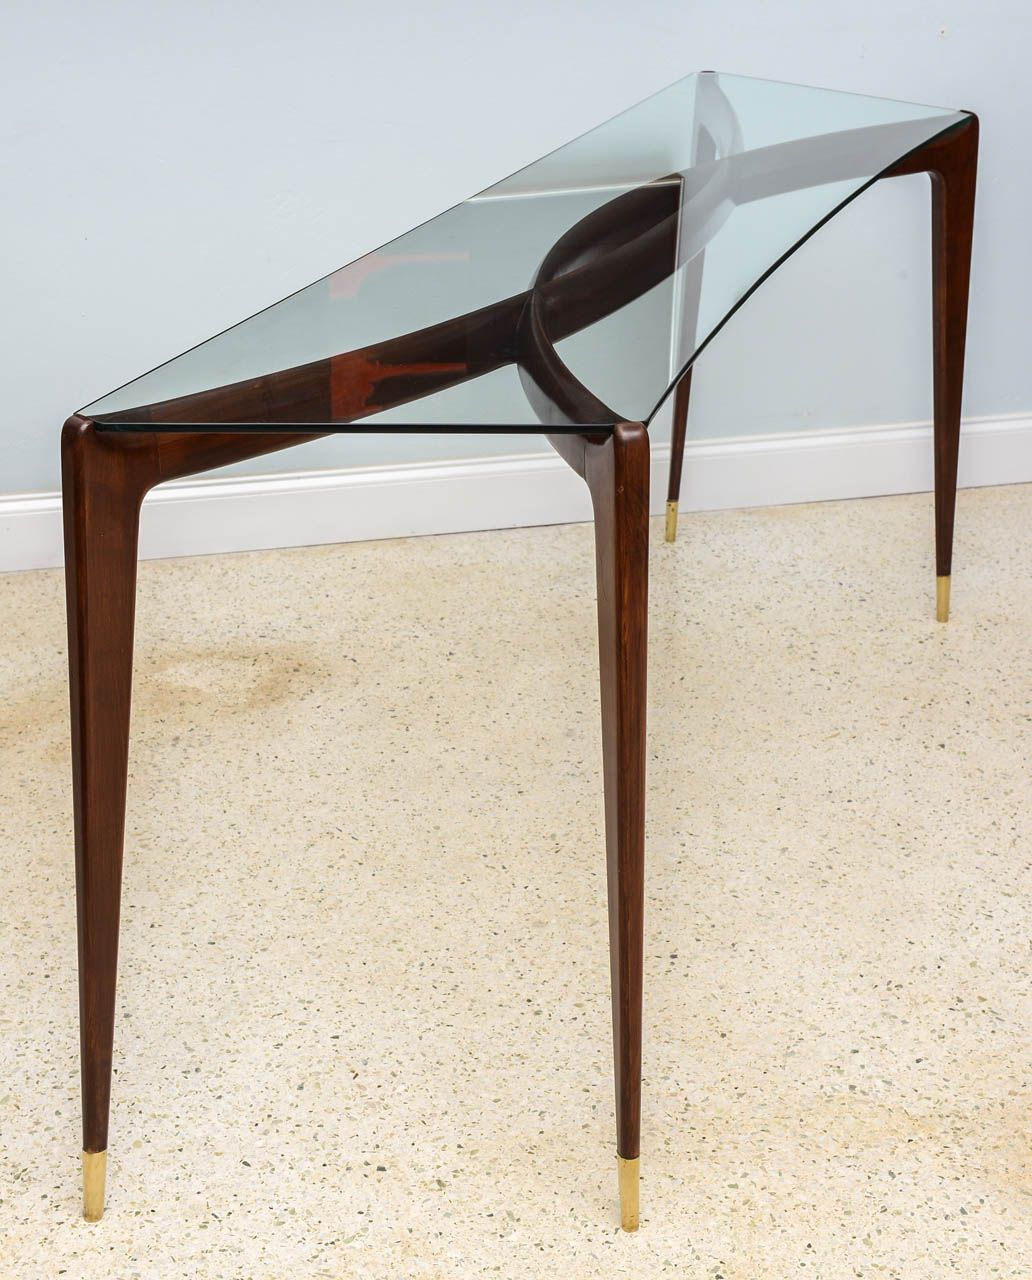 Pair of Italian Consoles Attributed to Gio Ponti